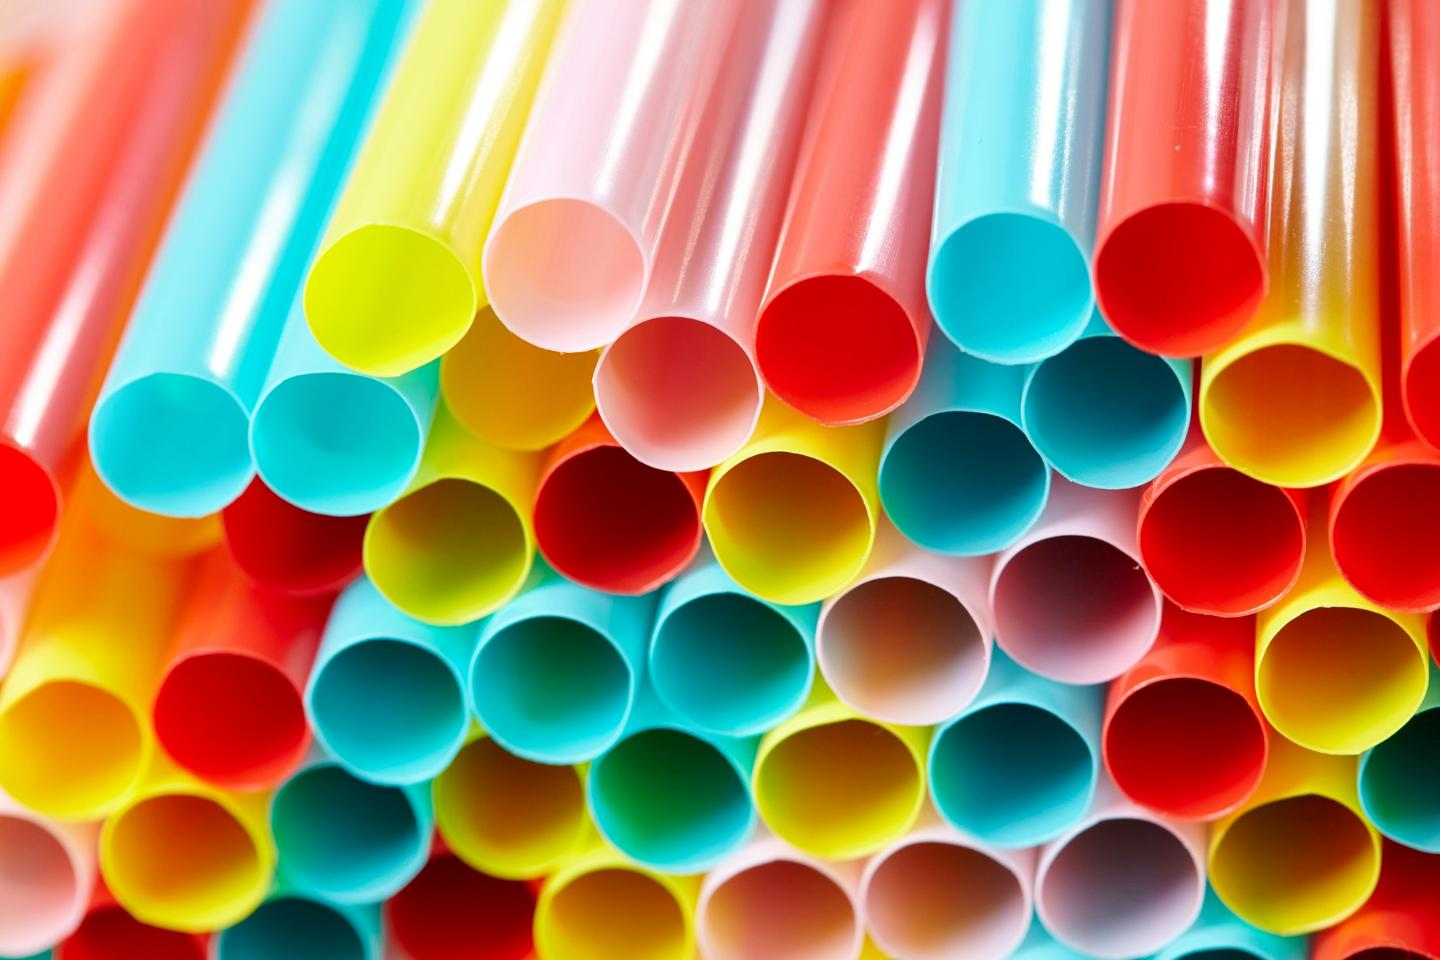 Nestlé says plastic straws will be eliminated from its products beginning next month